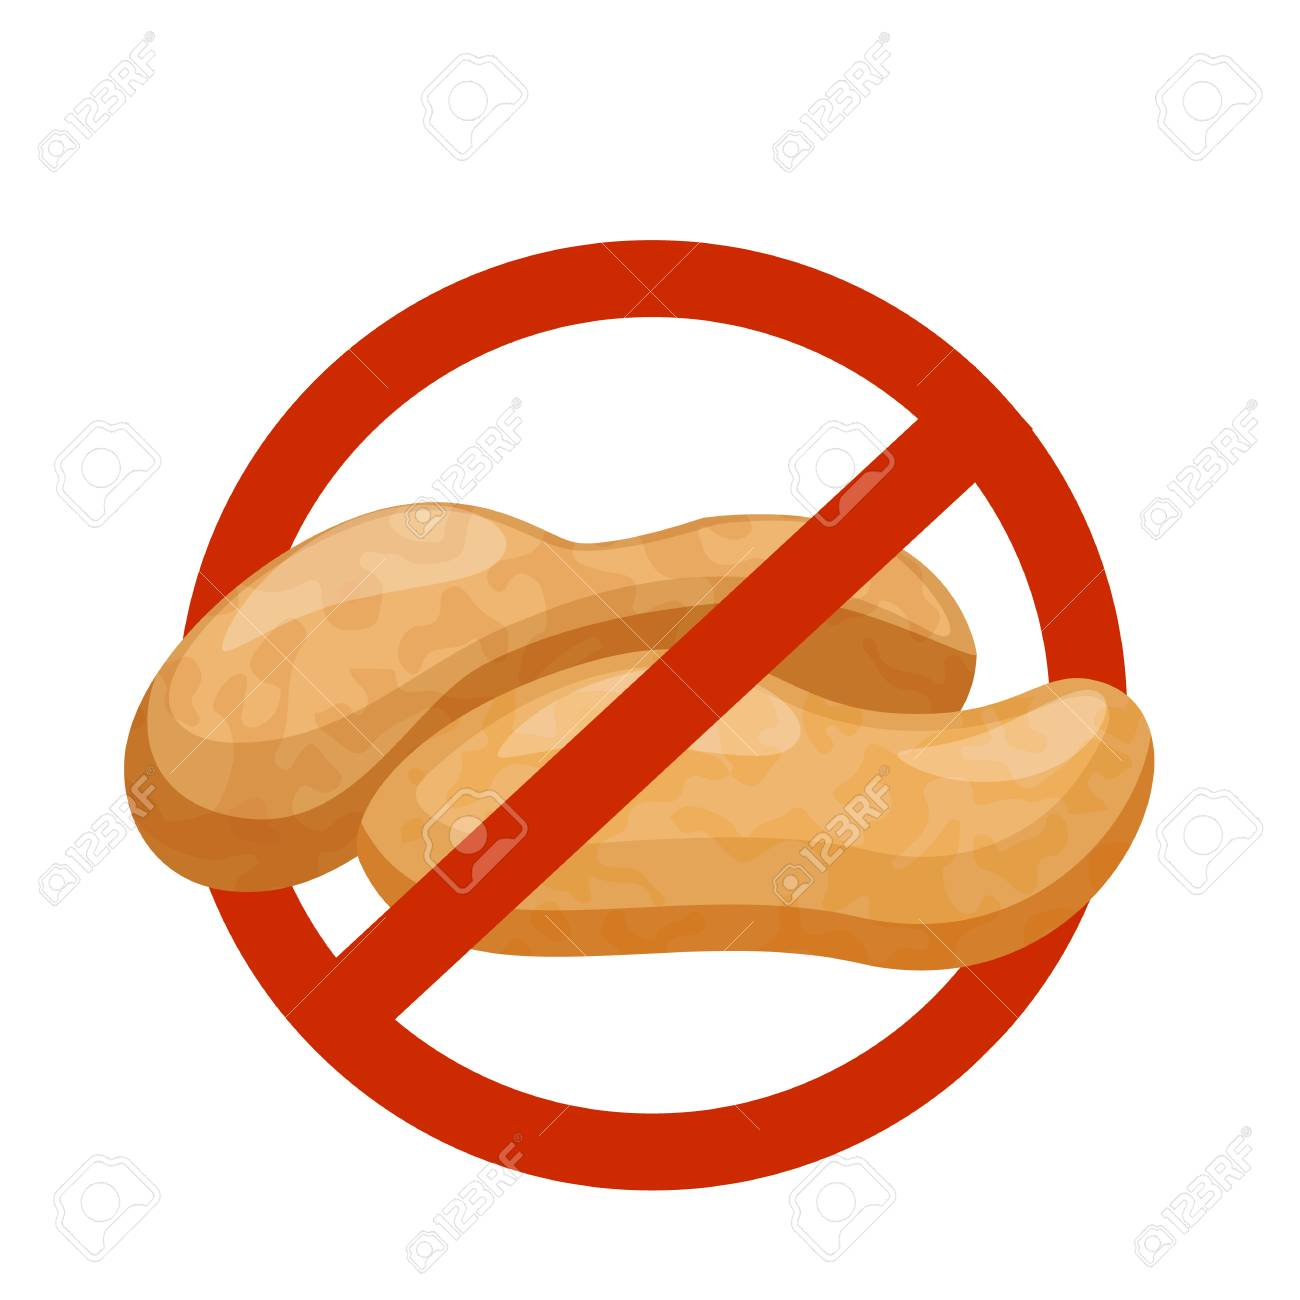 Contains No Nuts - Peanut Warning Royalty Free Cliparts, Vectors, And Stock  Illustration. Image 111754640.